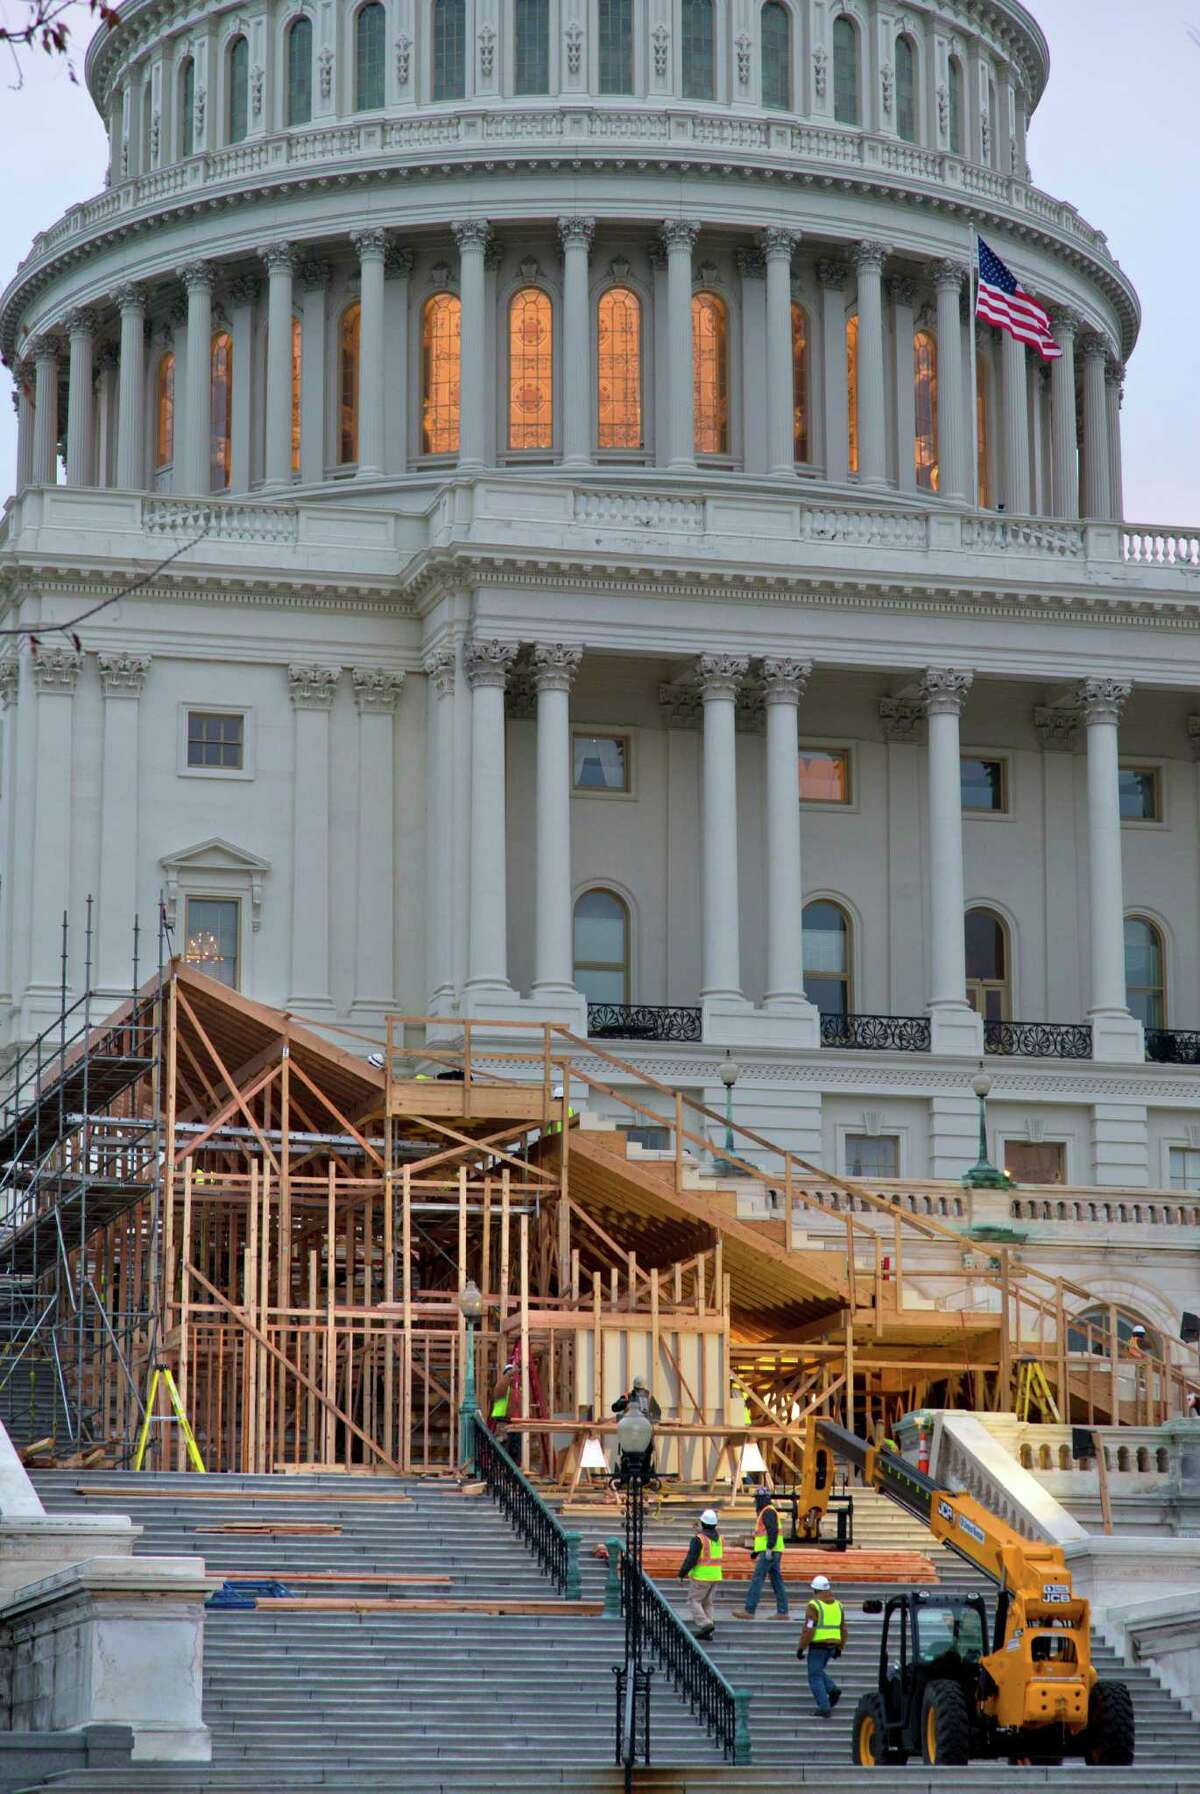 Construction continues on the viewing stands for President Barack Obama's January's Inauguration Day ceremonies, early Wednesday, Nov. 28, 2012, on Capitol Hill in Washington. (AP Photo/J. Scott Applewhite)